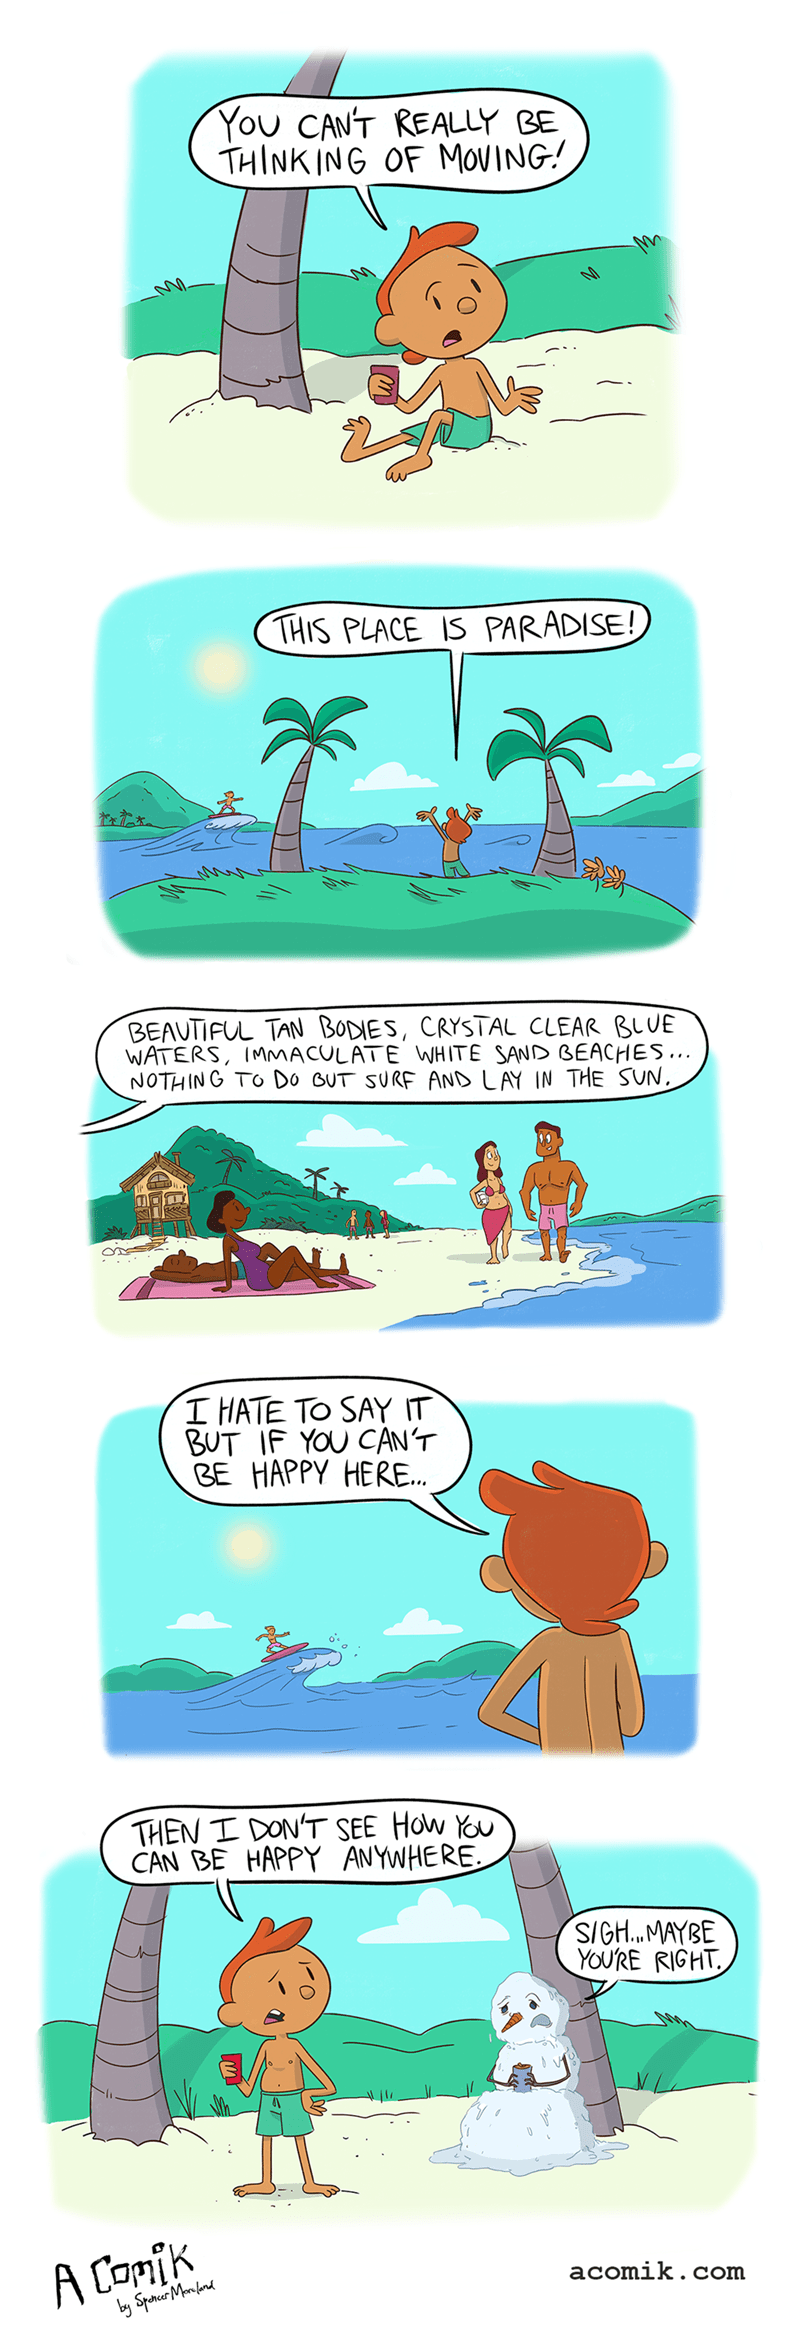 funny-web-comics-conversation-between-snowman-on-paradise